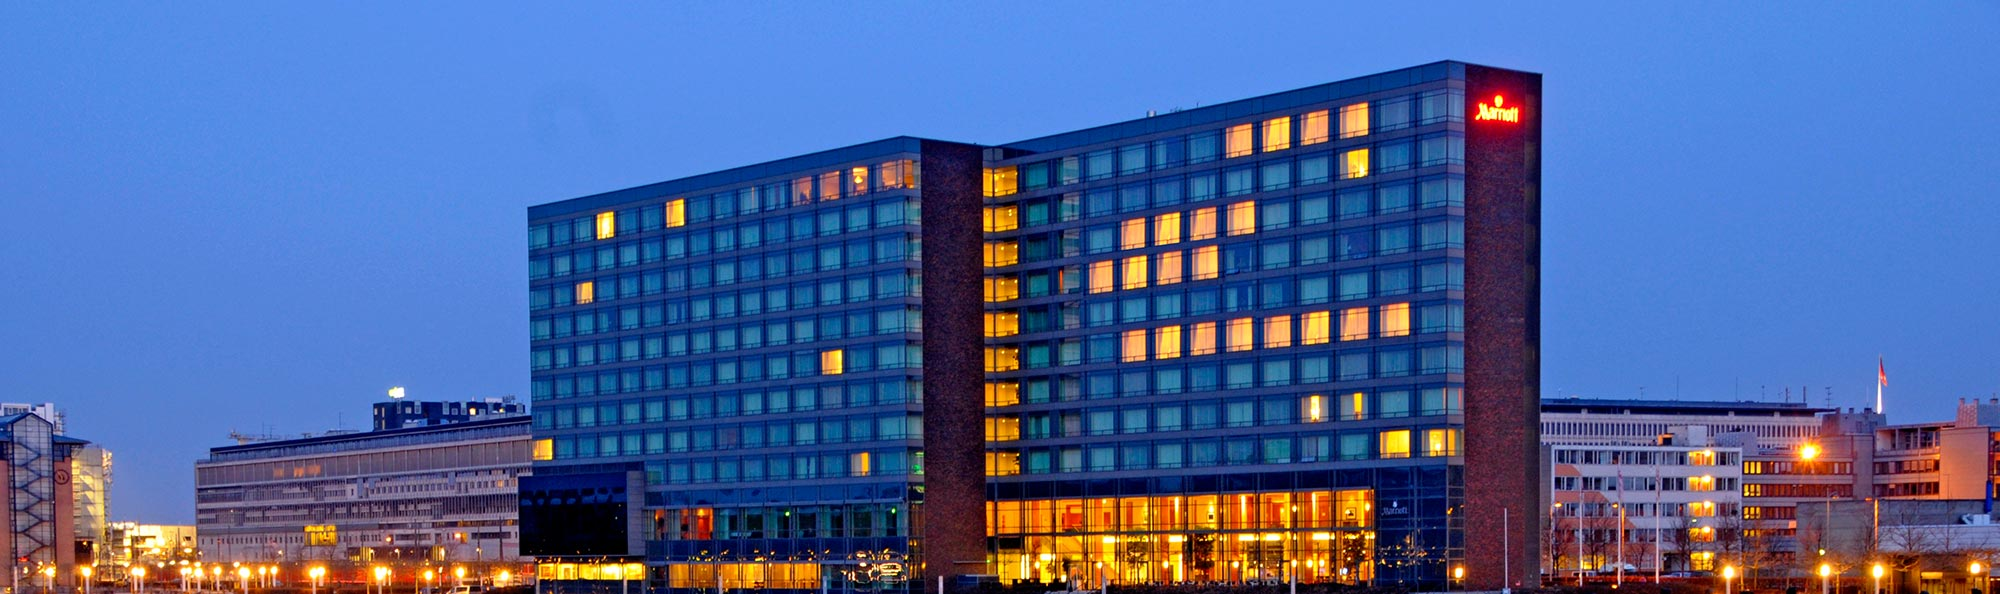 Marriott Copenhagen